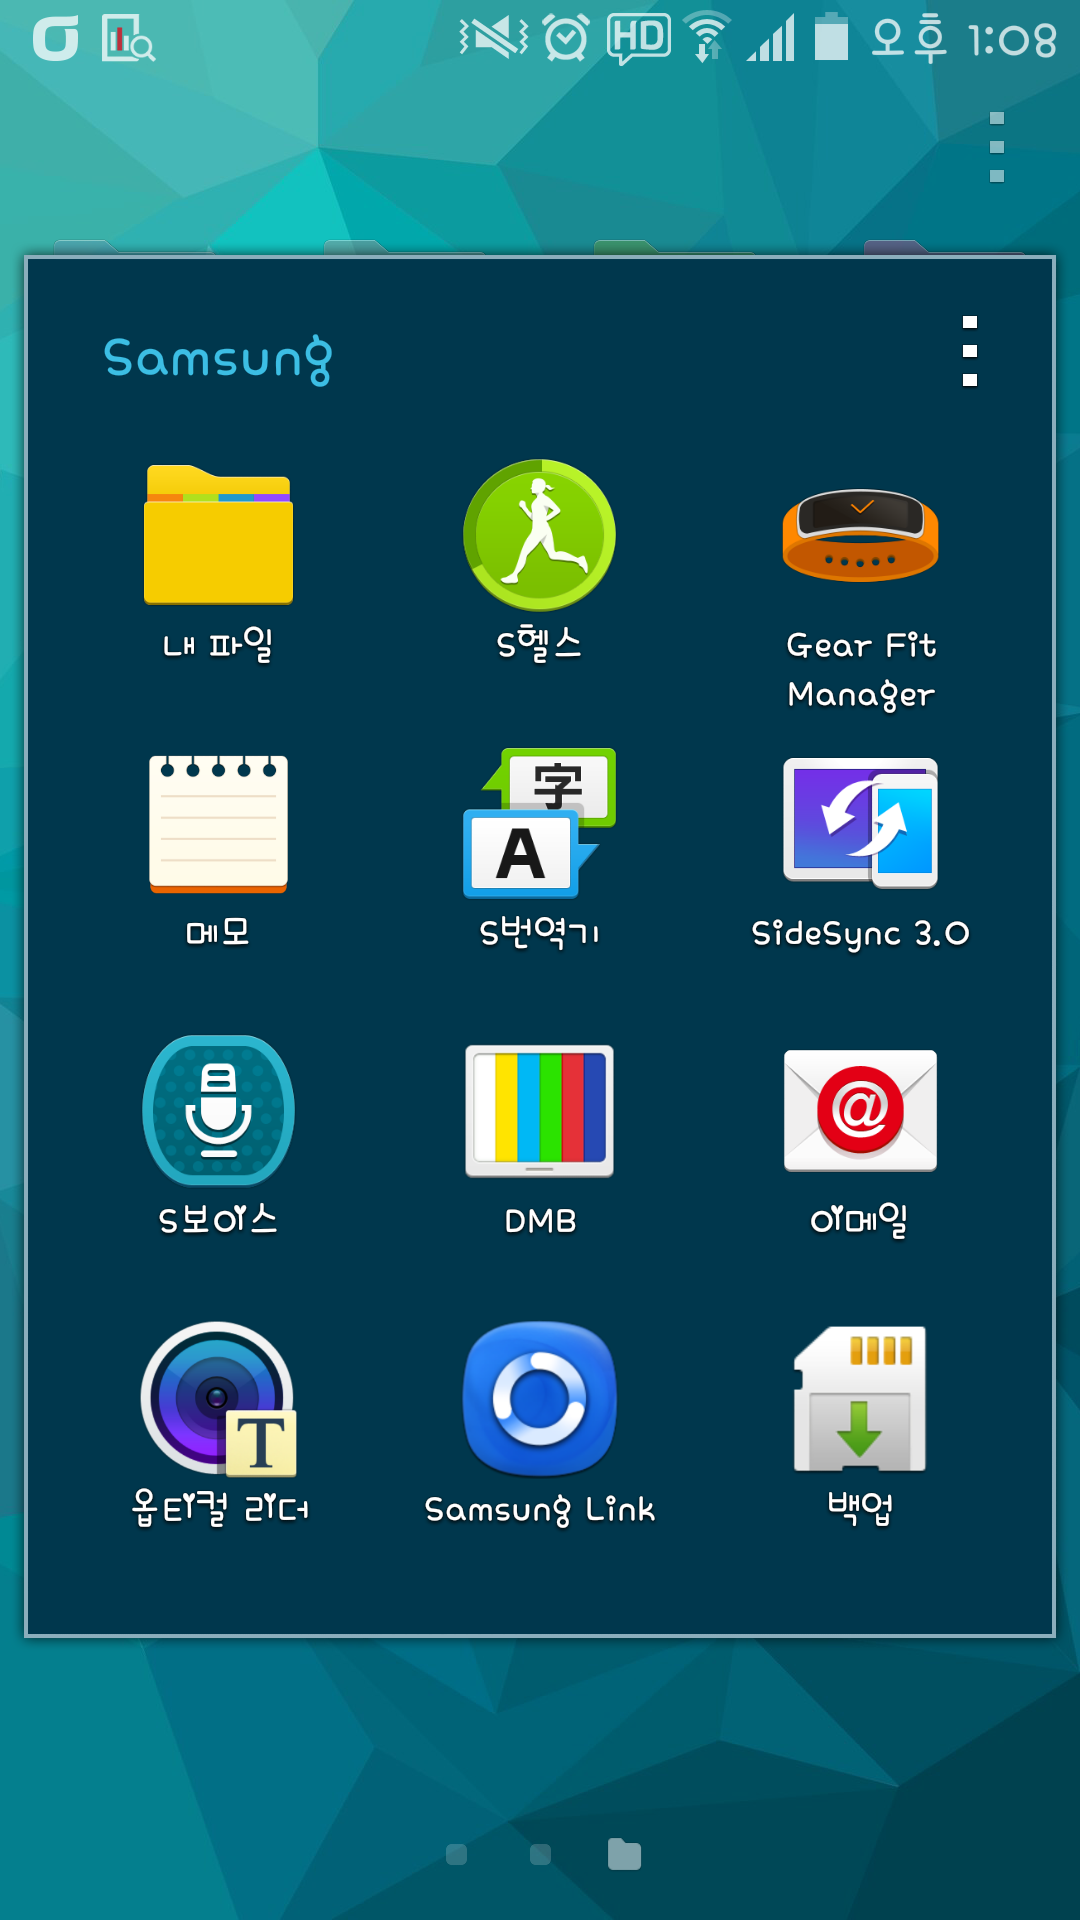 Screenshot_2014-11-24-13-08-29.png